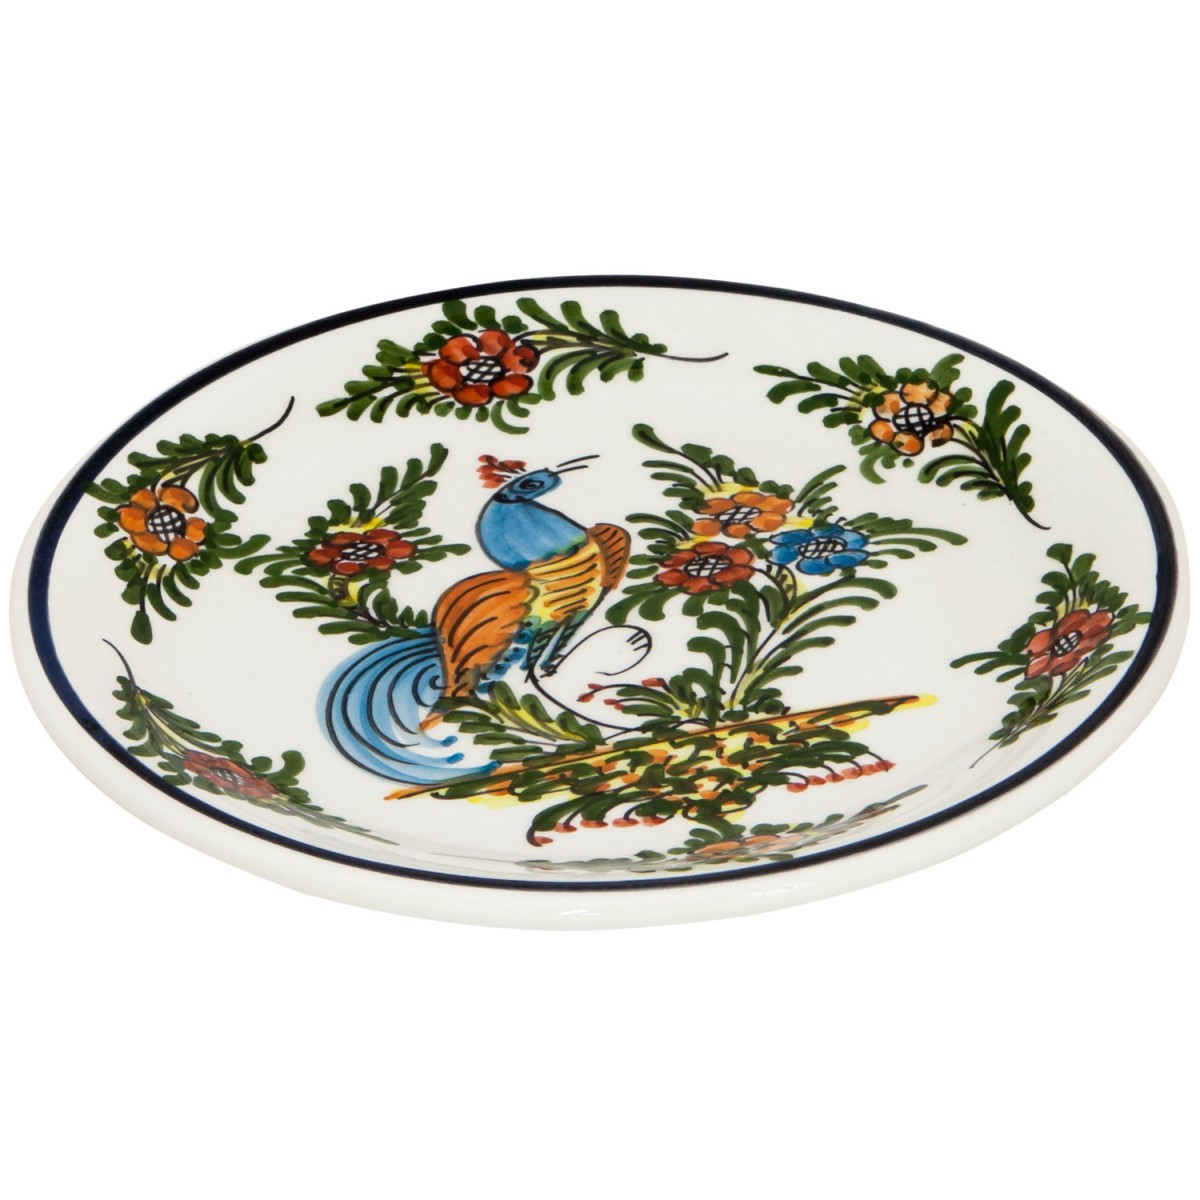 Hand_Painted_Ceramic_Fruit_Decorative_Plate-Peacock-I-1